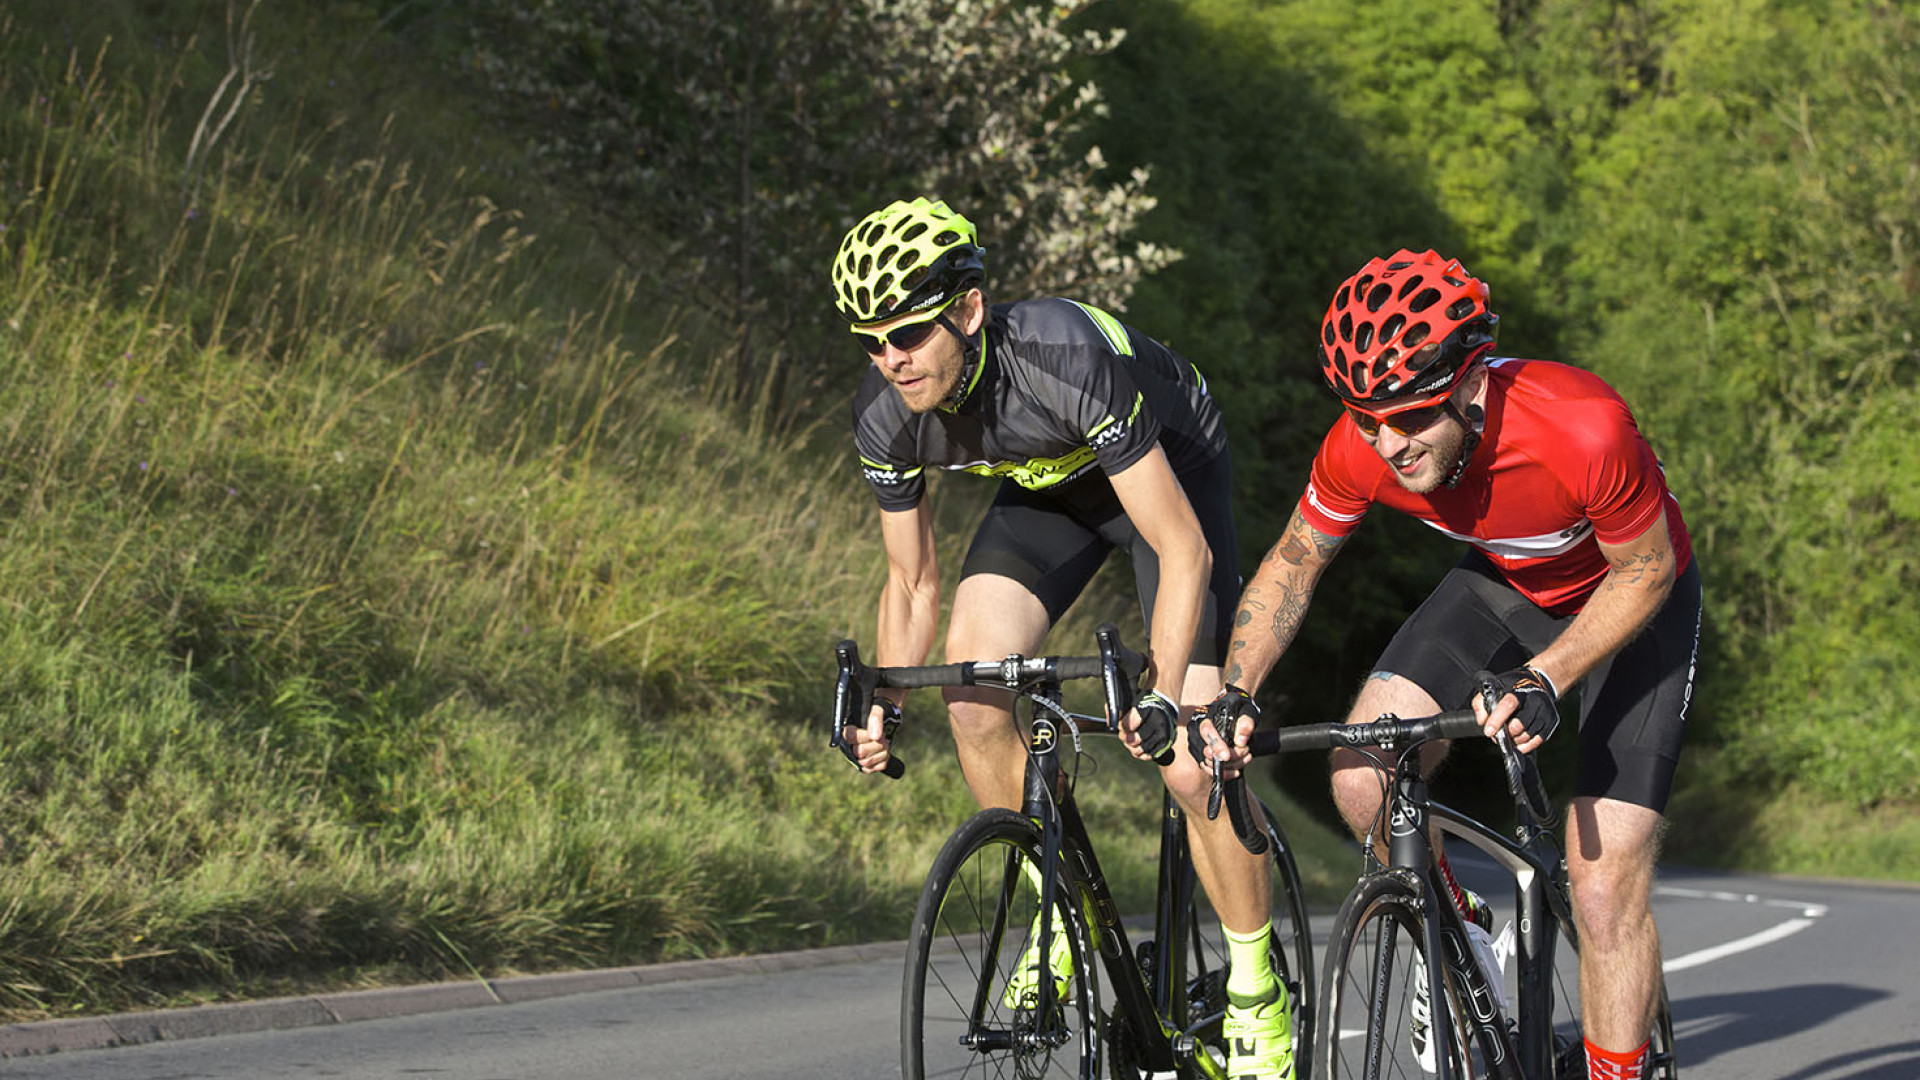 Two cyclists racing up a hill in their Orro carbon fibre road bikes